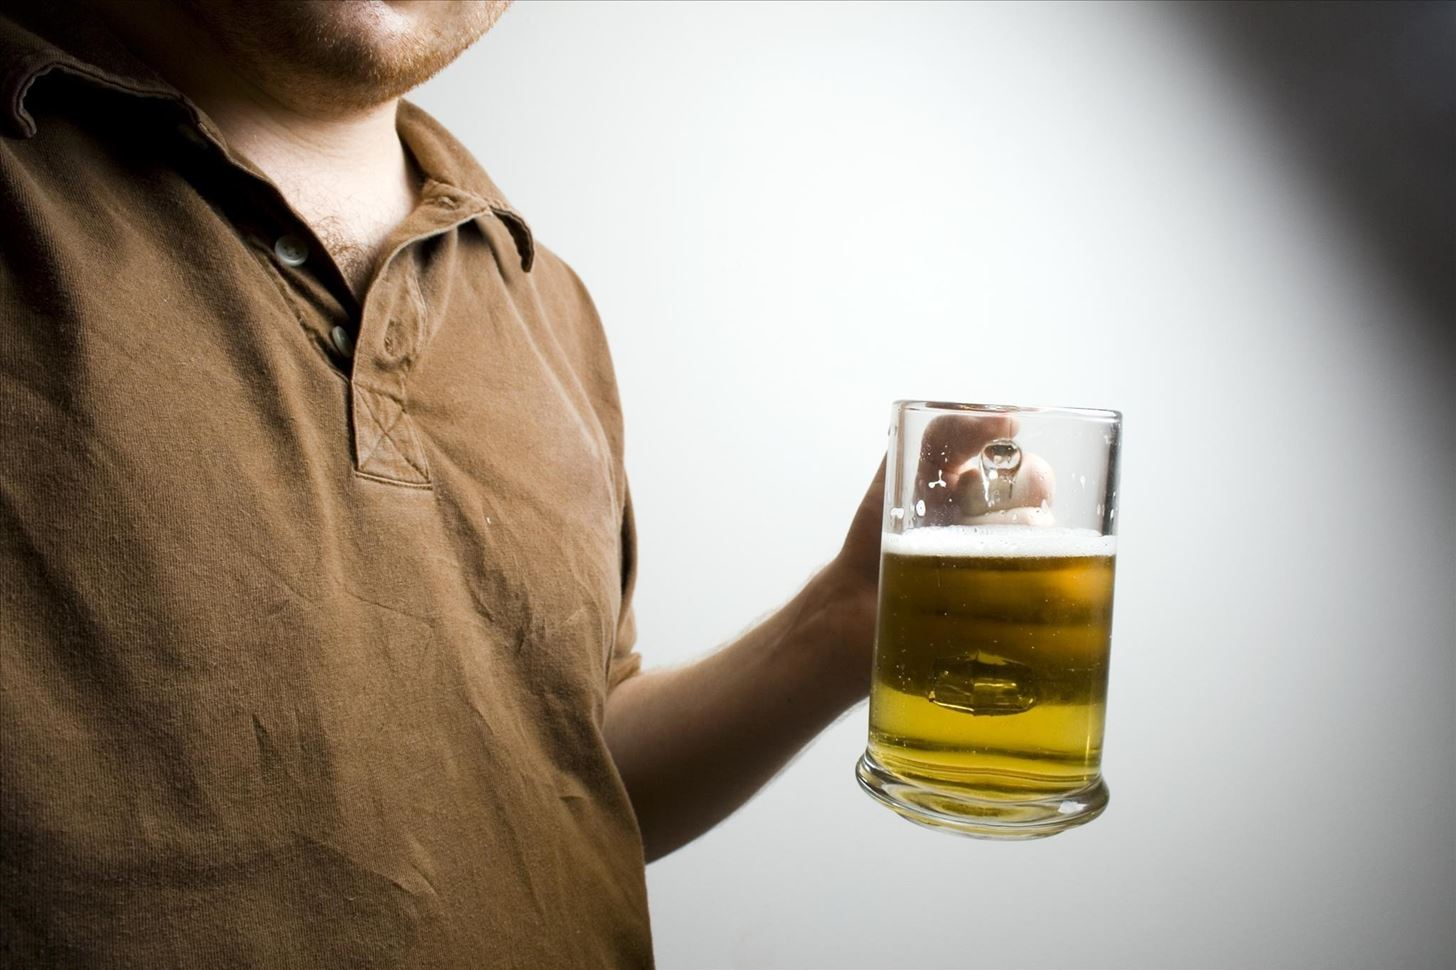 Body Language 101: How to Hold Your Beer & Body to Look & Feel More Confident